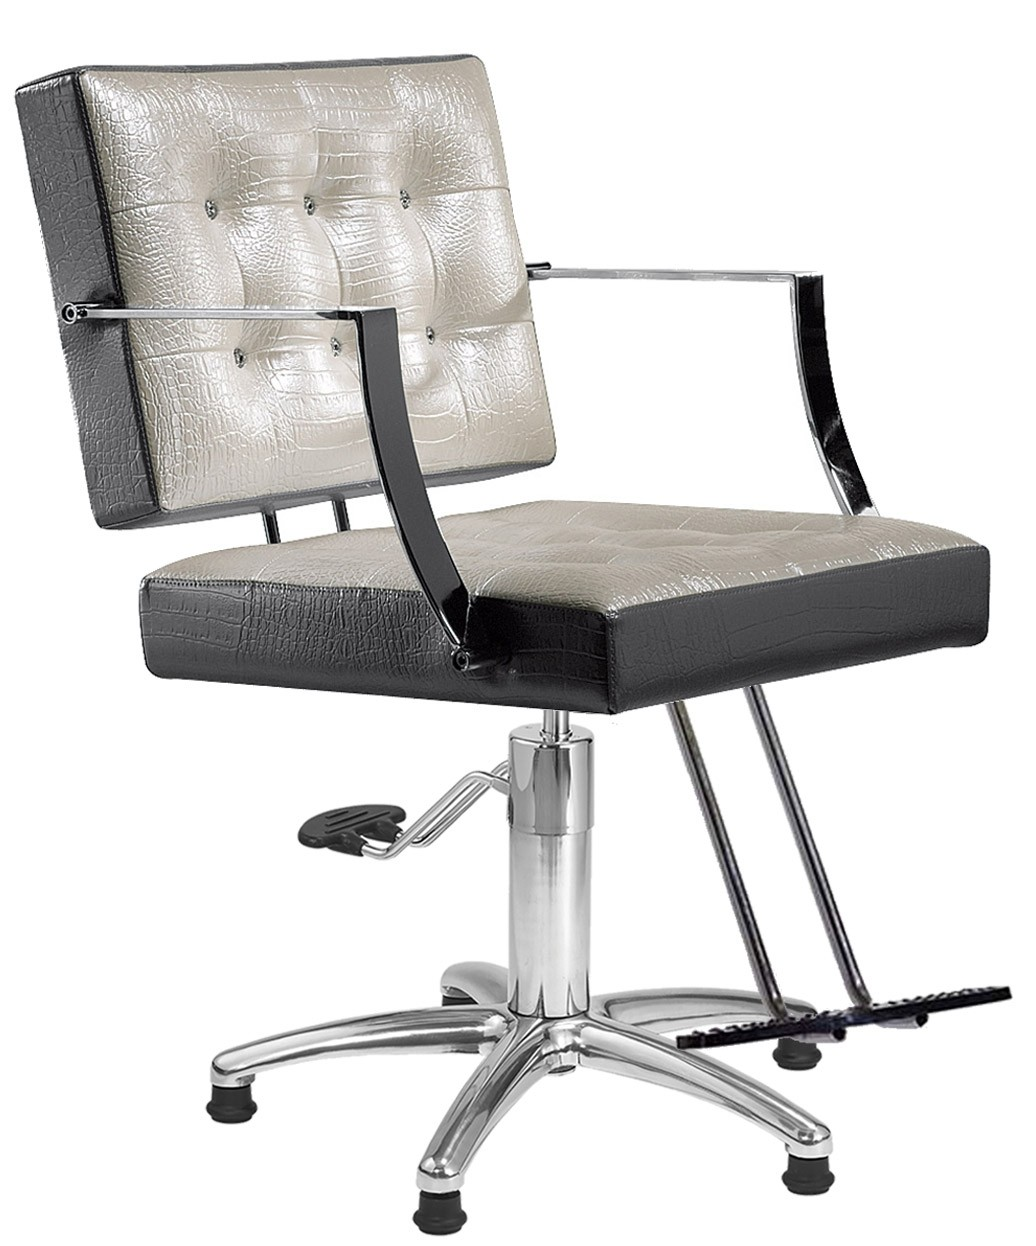 Salon Ambience SH-445 Grace Styling Chair